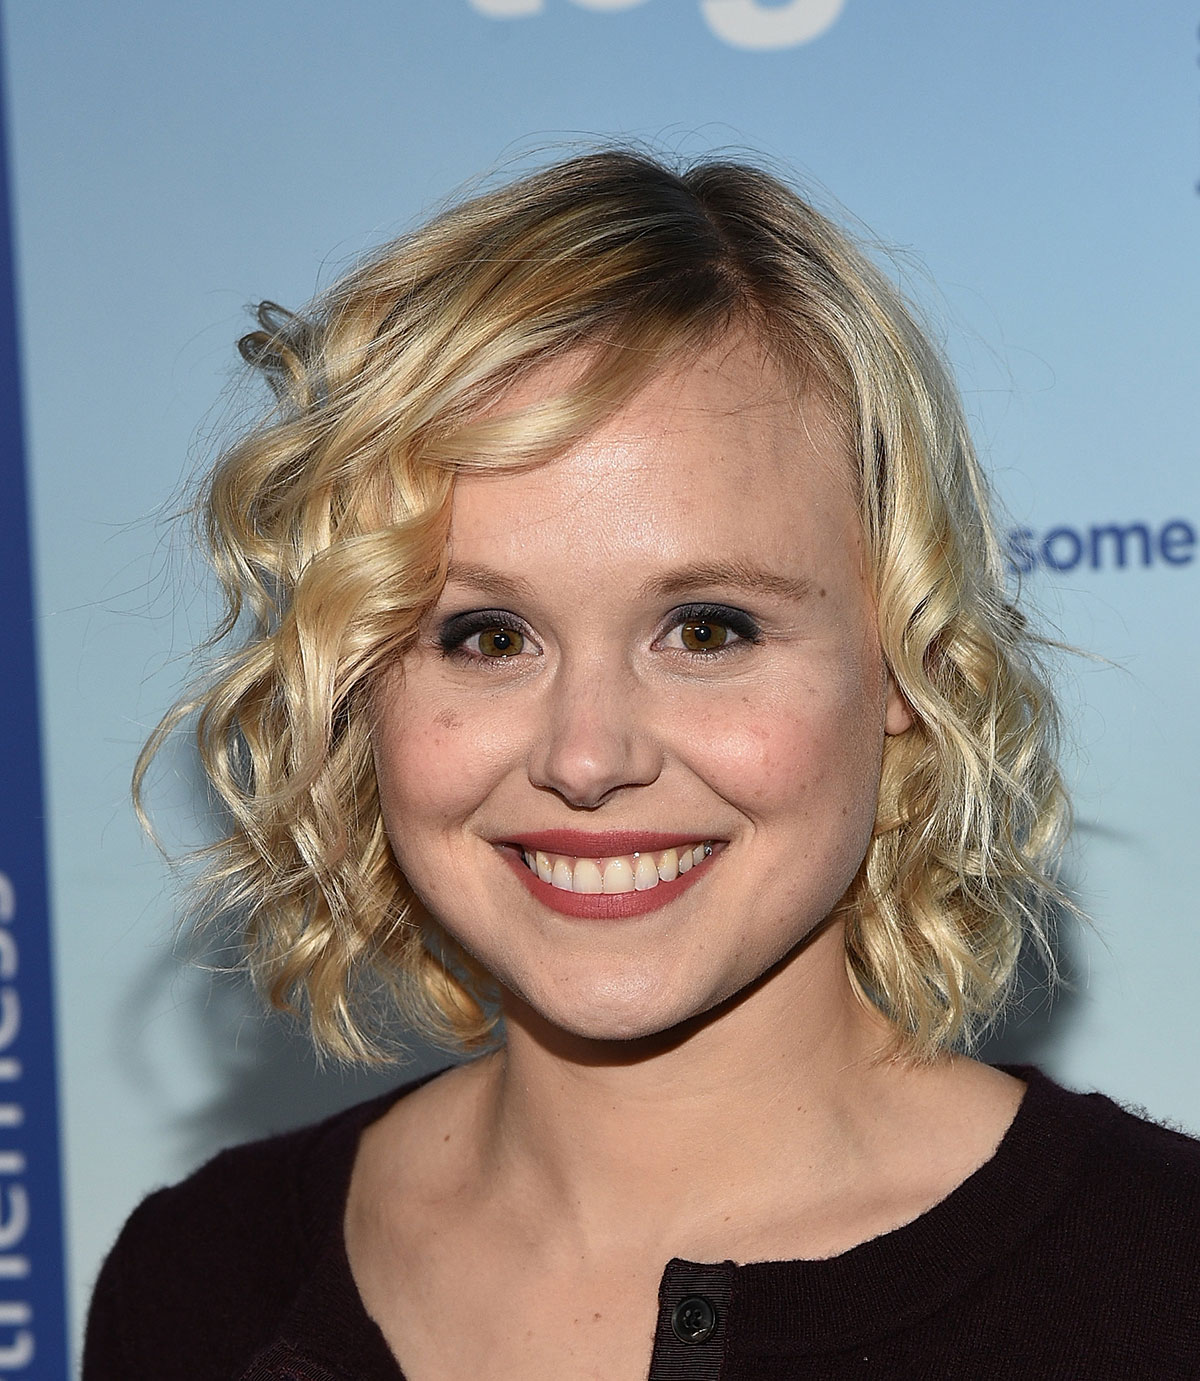 Alison Pill Fotos alison pill at togetherness premiere – hawtcelebs